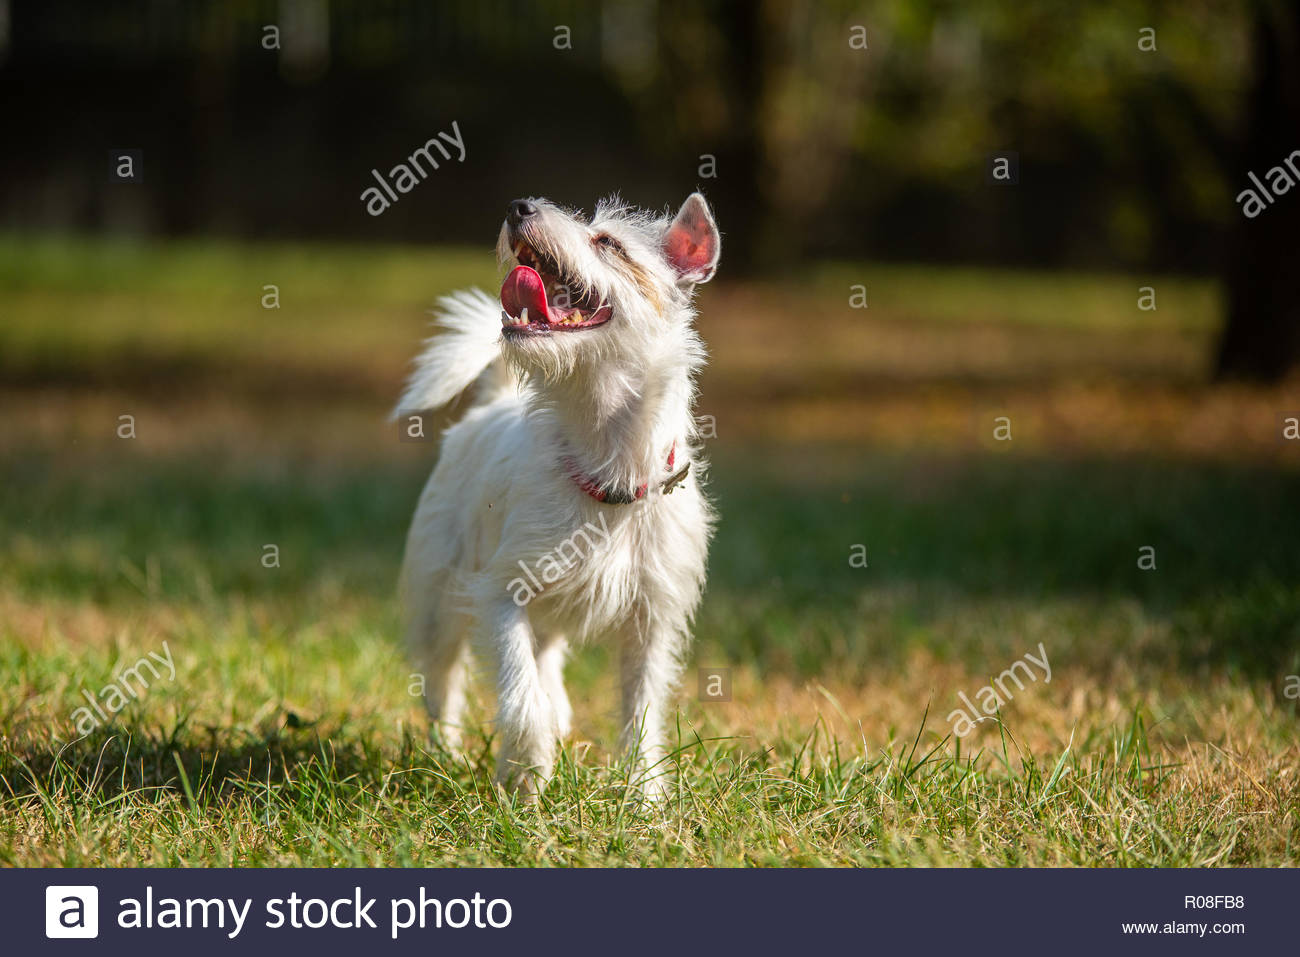 Parson Russell Terrier walking and looking up towards owner - Stock Image